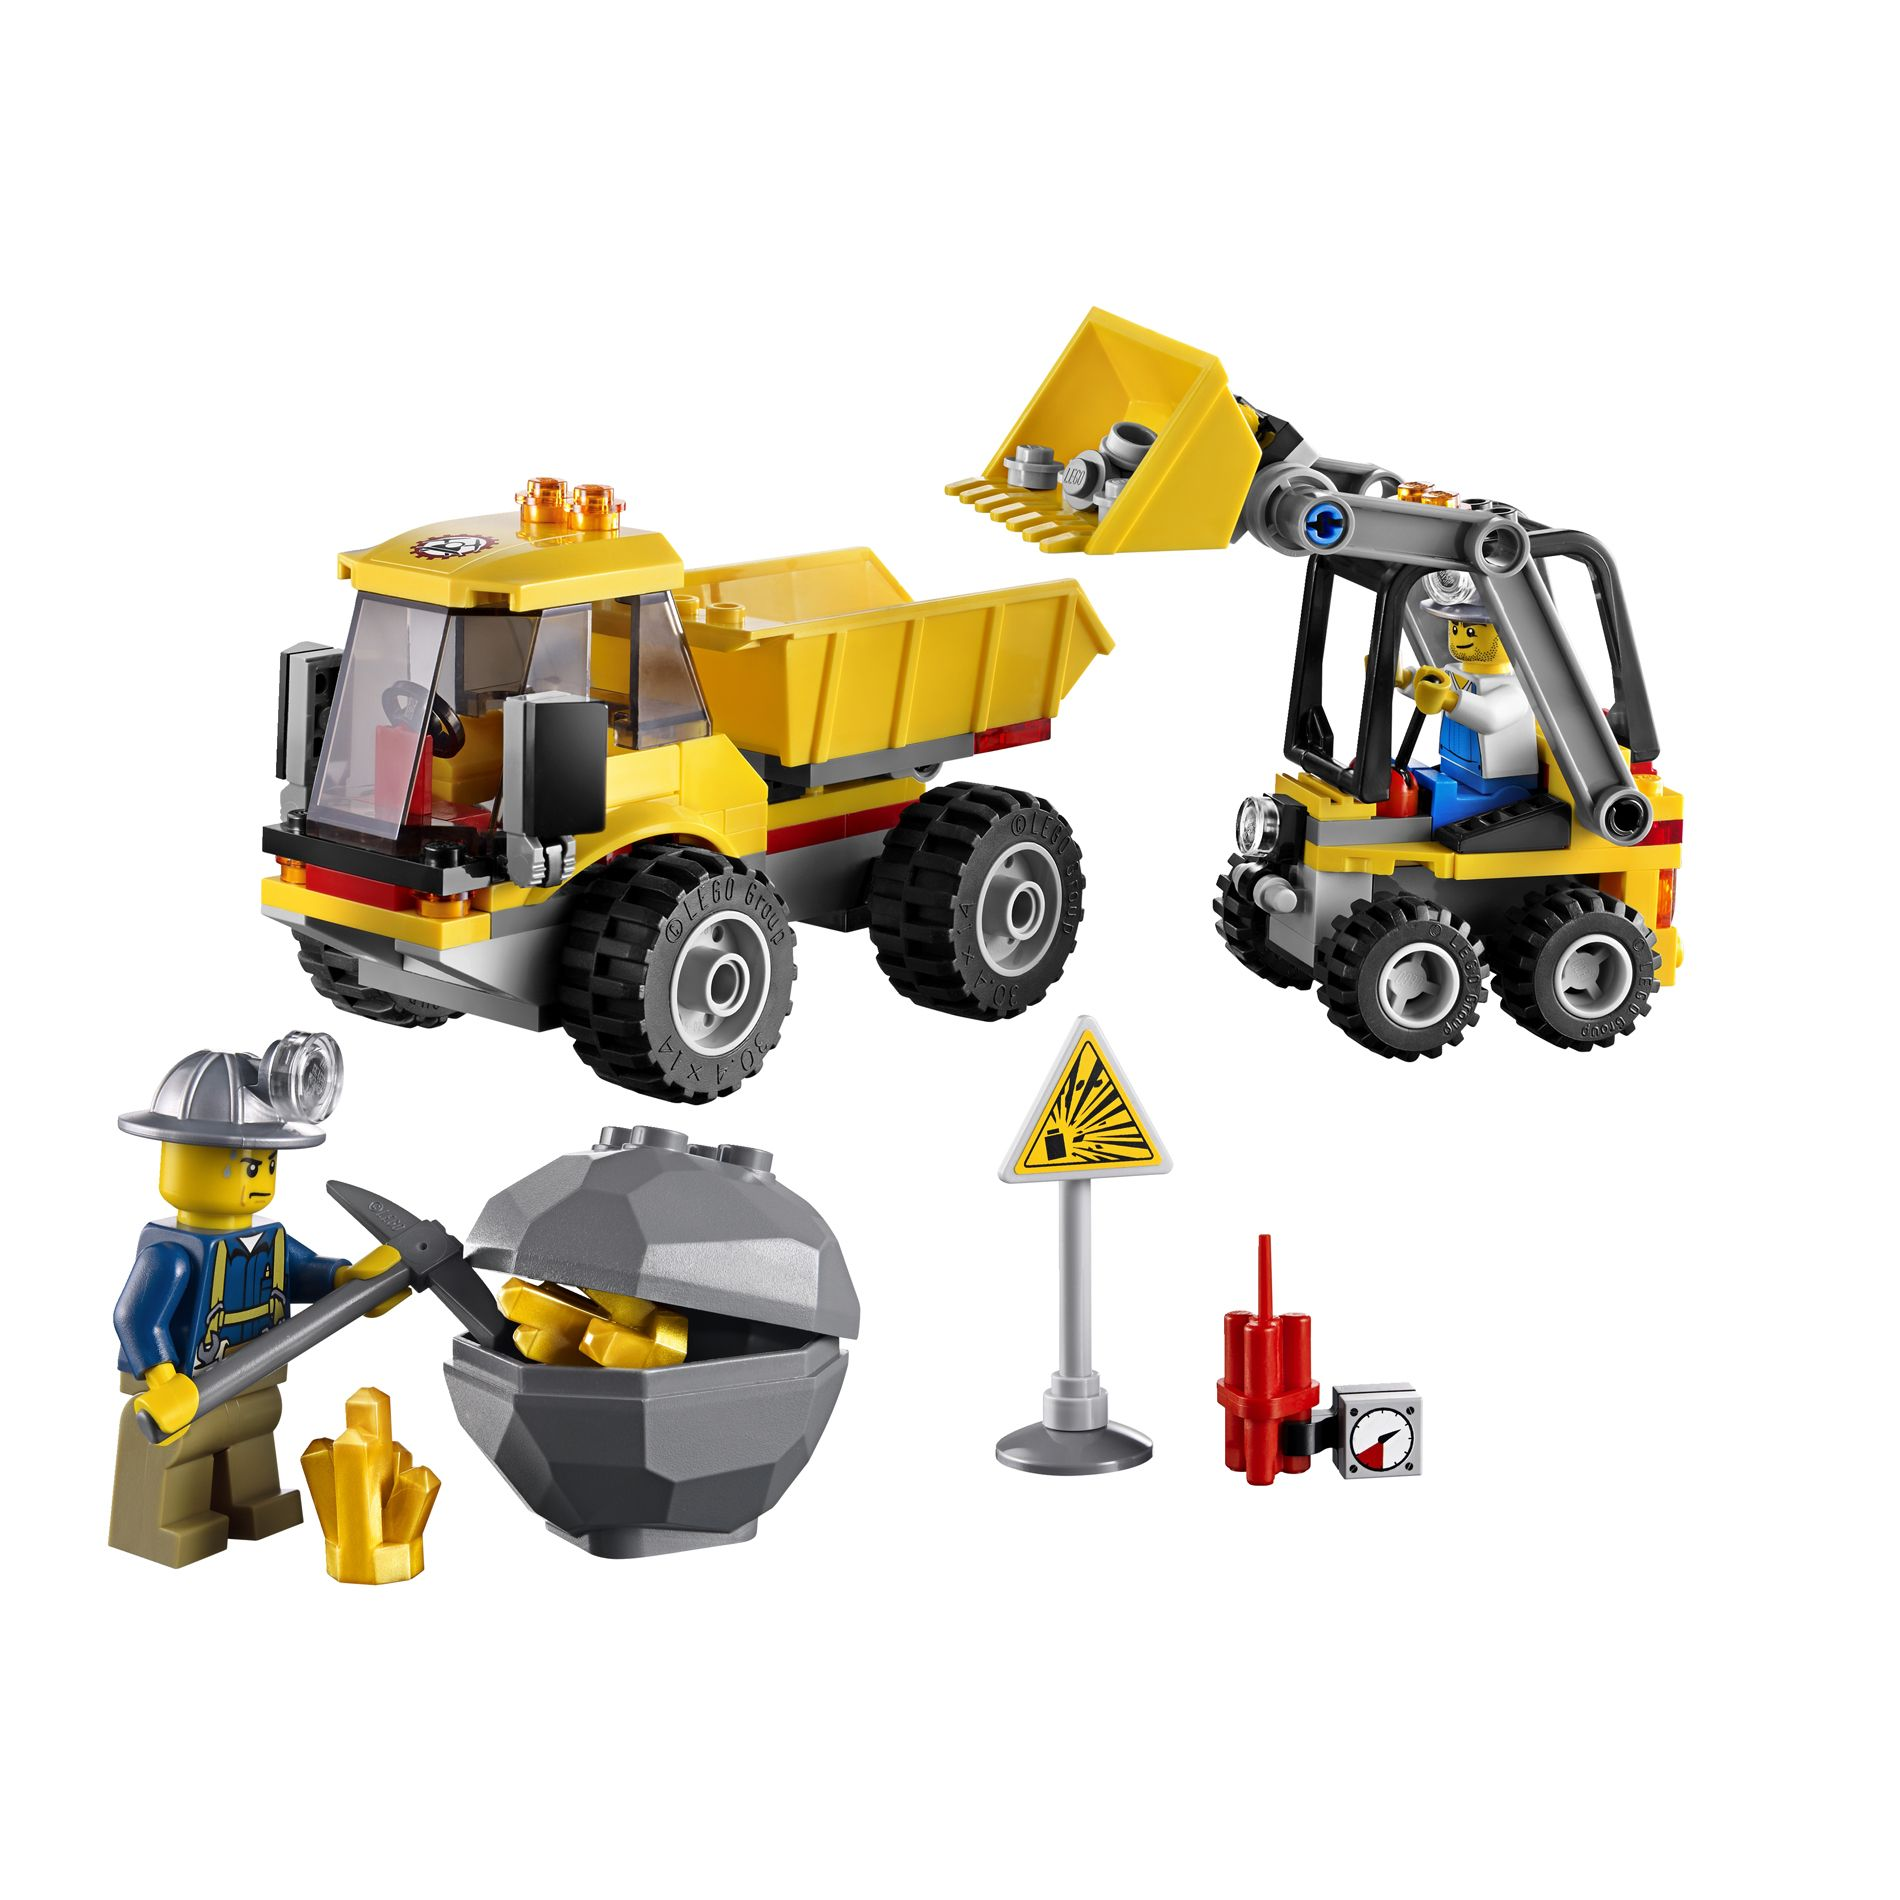 LEGO  Mining Loader and Tipper